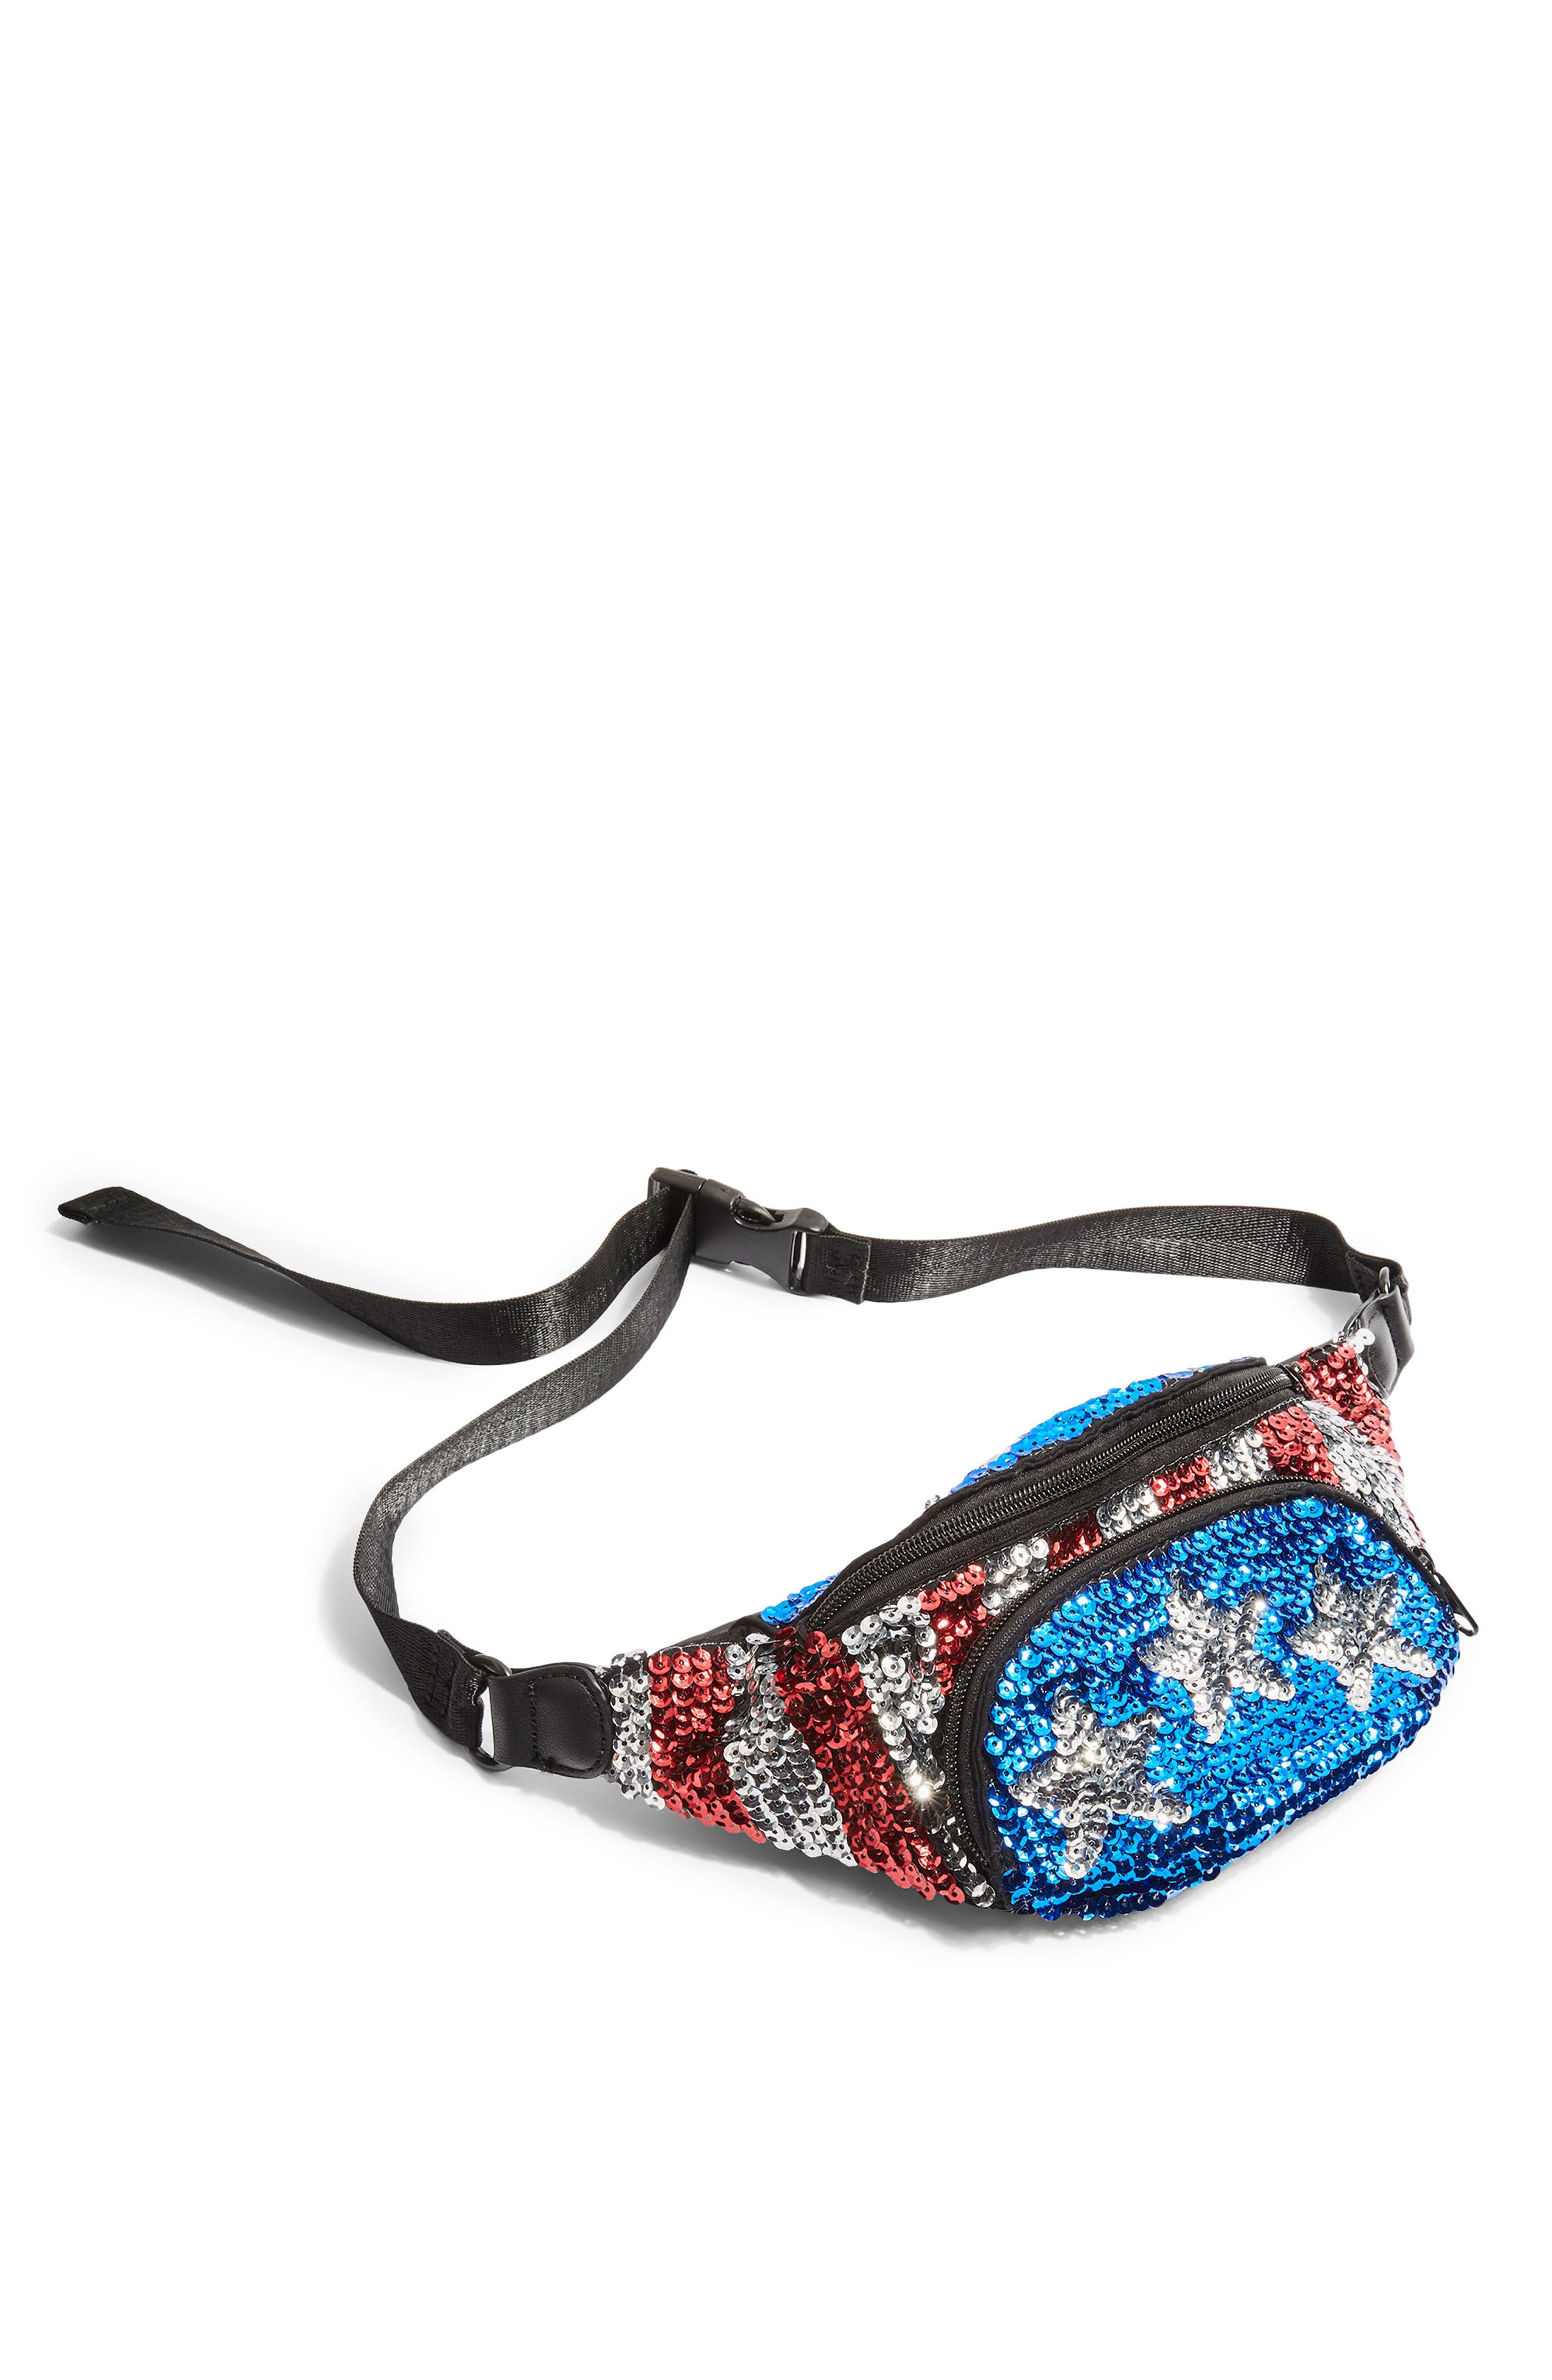 Florida Sequin Bum Bag,                             Alternate thumbnail 4, color,                             400